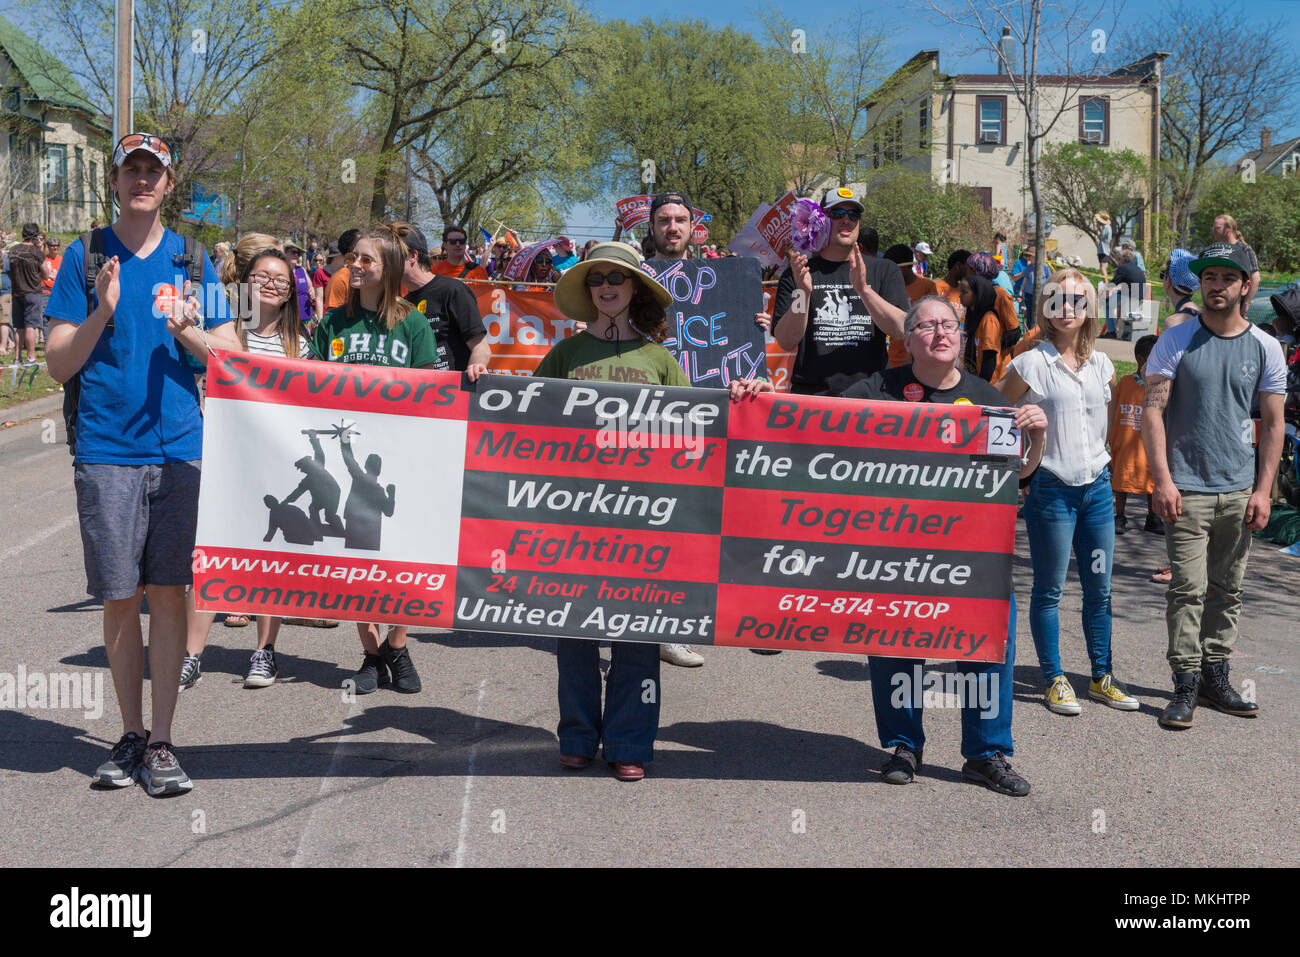 MINNEAPOLIS - May 6, 2018: Individuals proteting police brutality march in Minneapolis' yearly May Day parade. - Stock Image